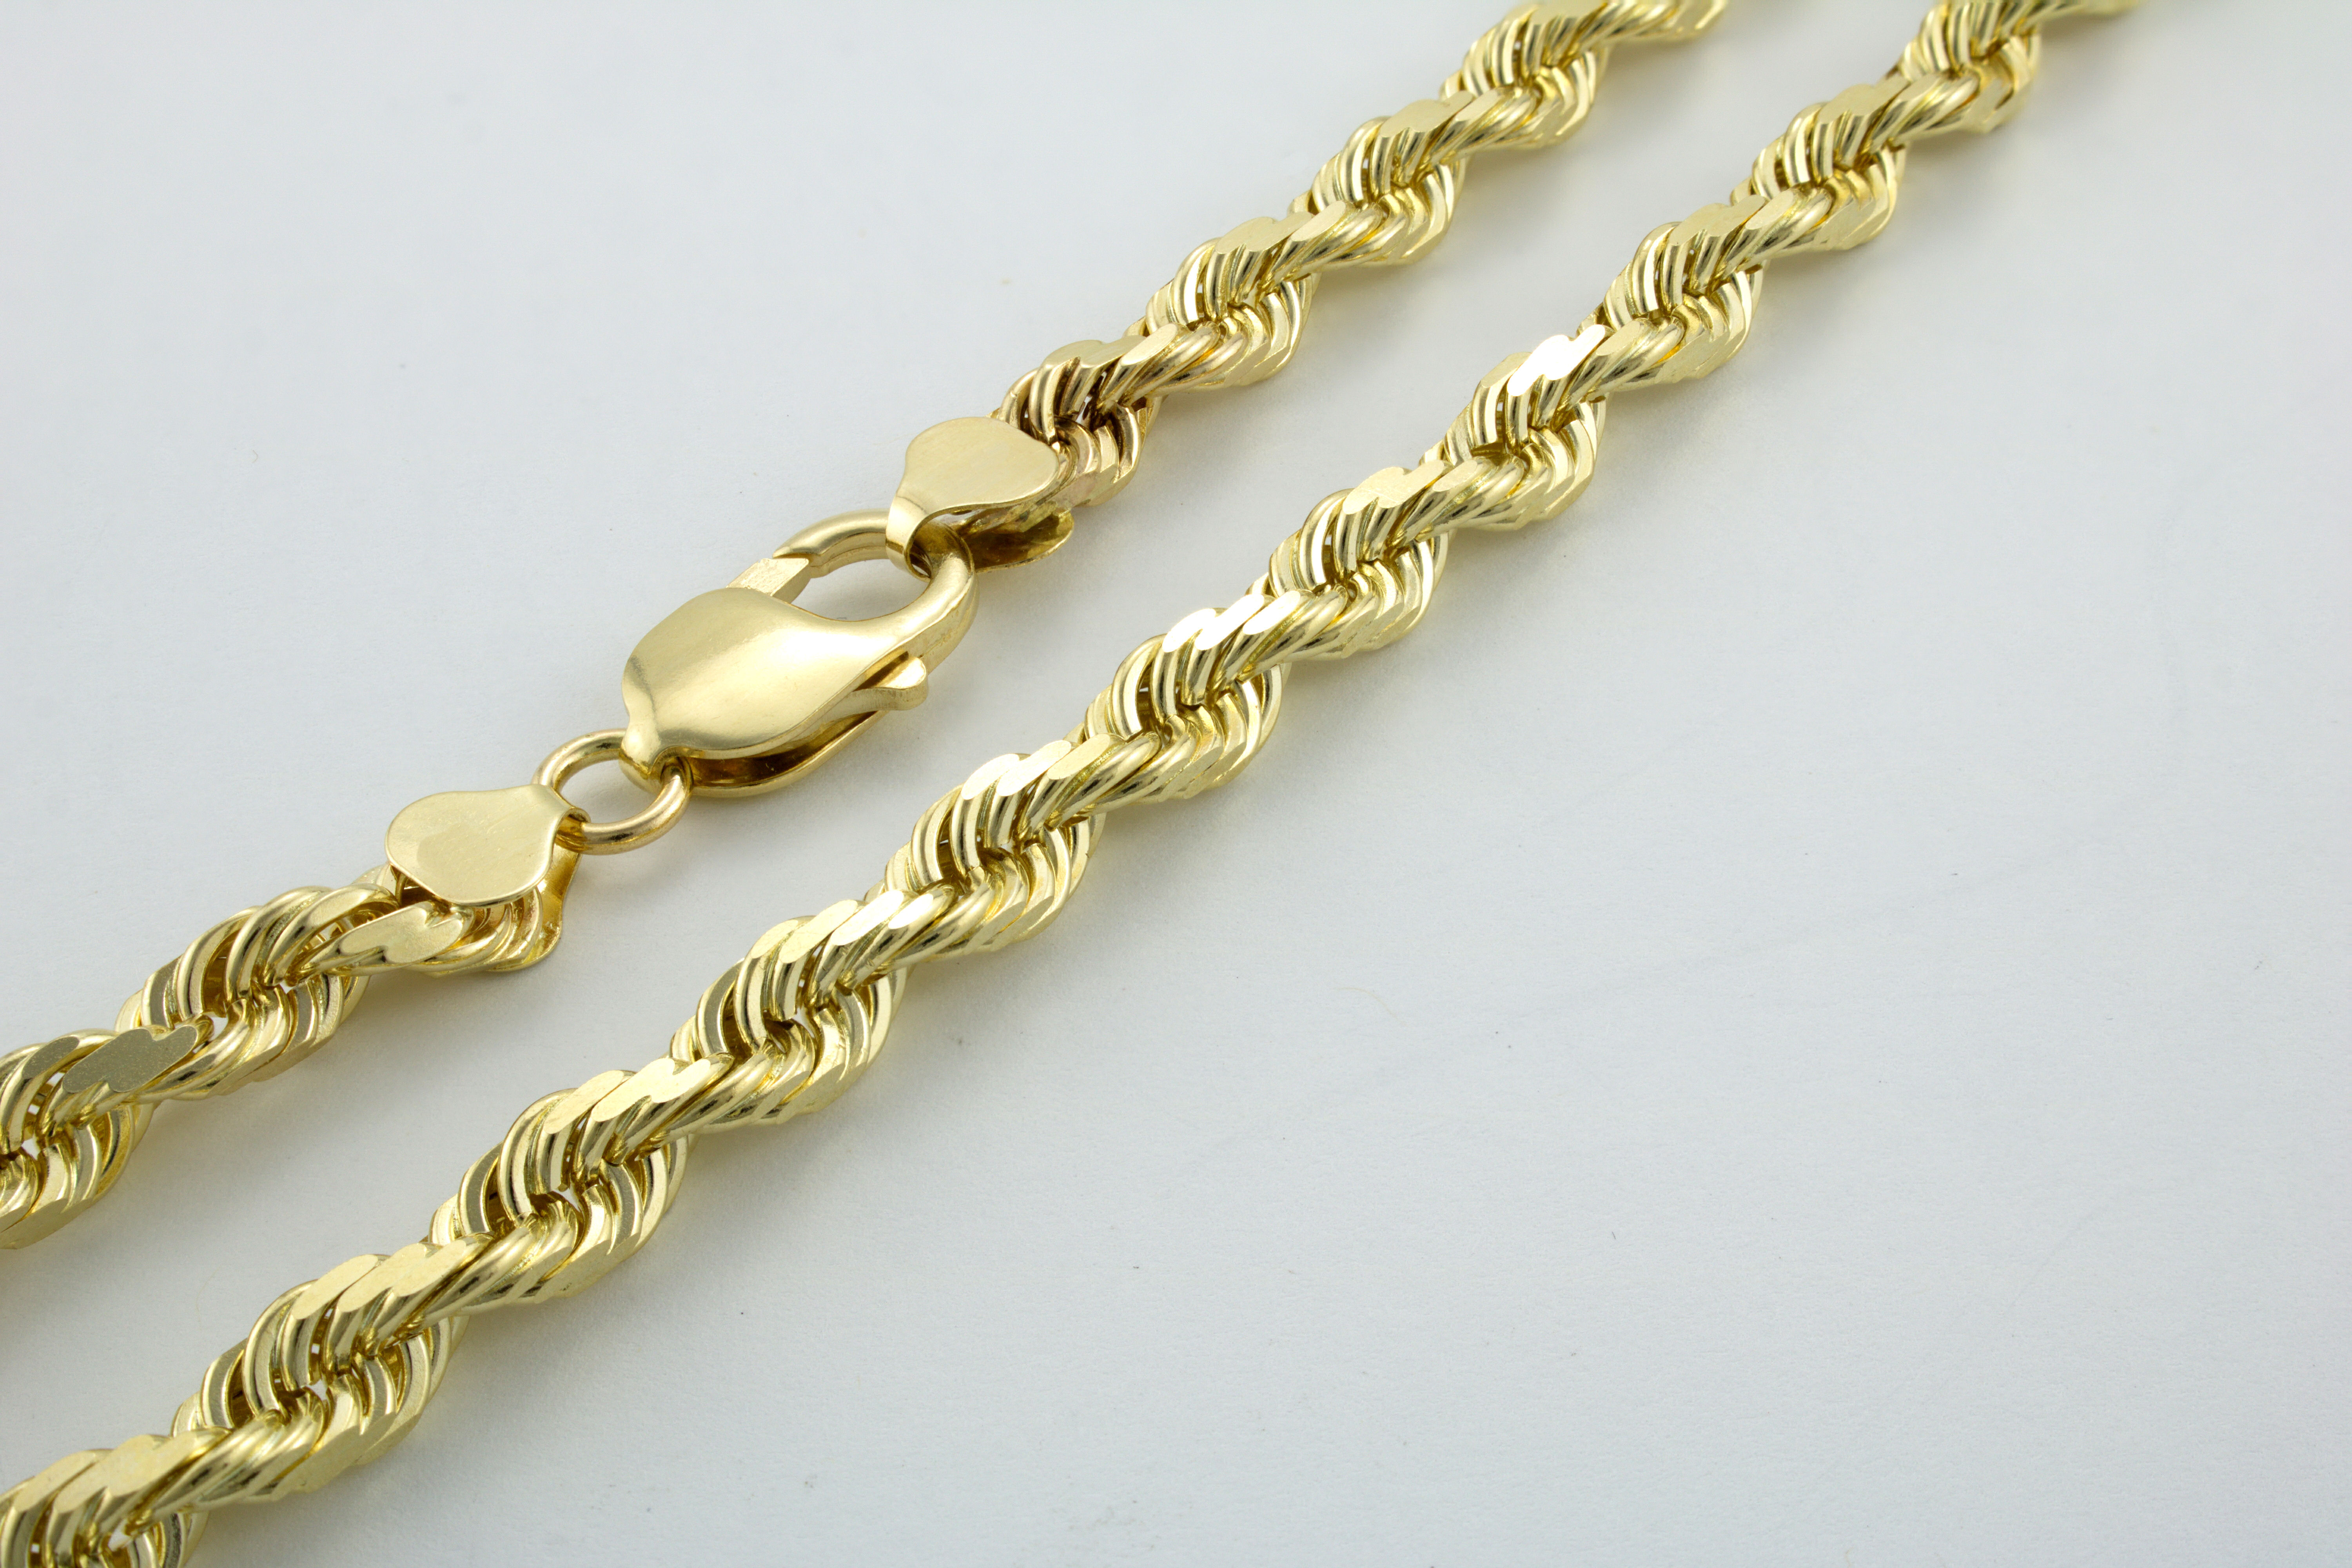 shakti queenie ethical edit ellenwood gold fairtrade product in yellow chain chains handmade